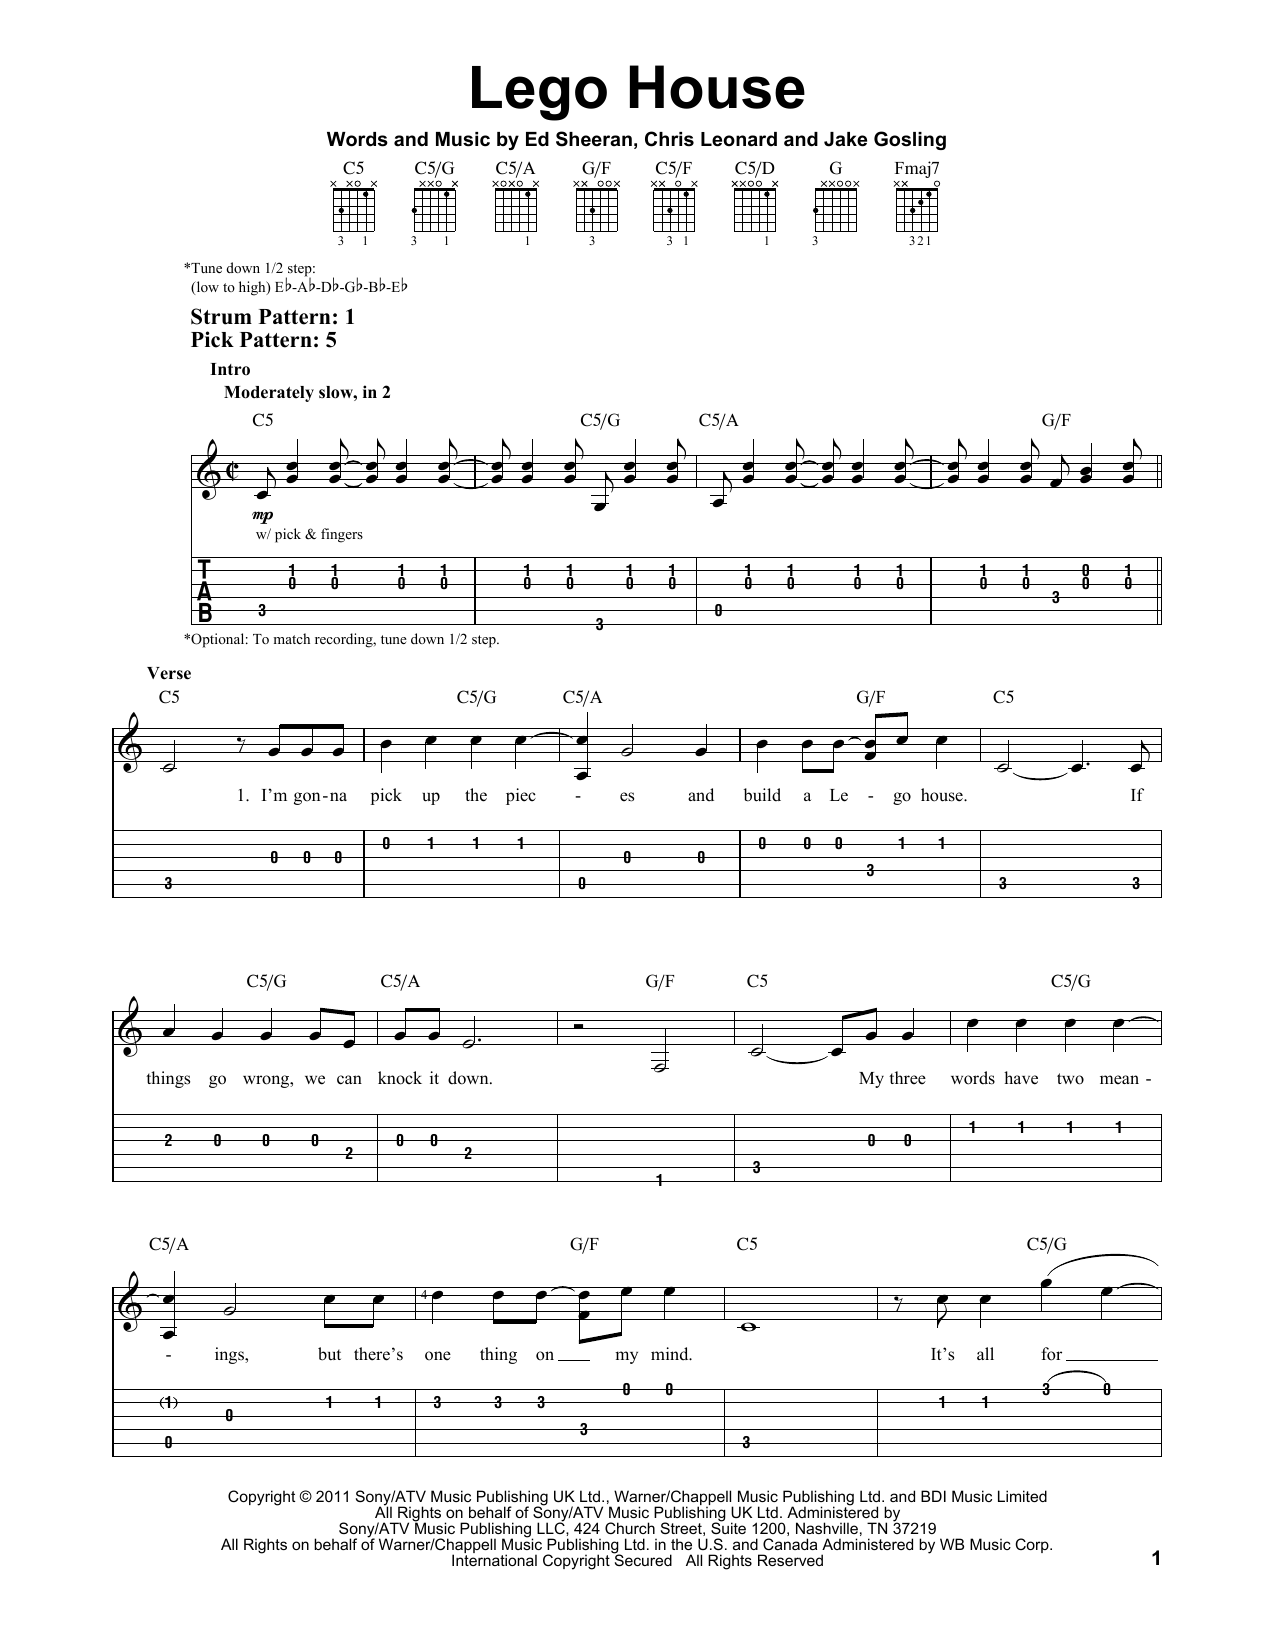 Lego house by ed sheeran easy guitar tab guitar instructor the most accurate tab hexwebz Gallery